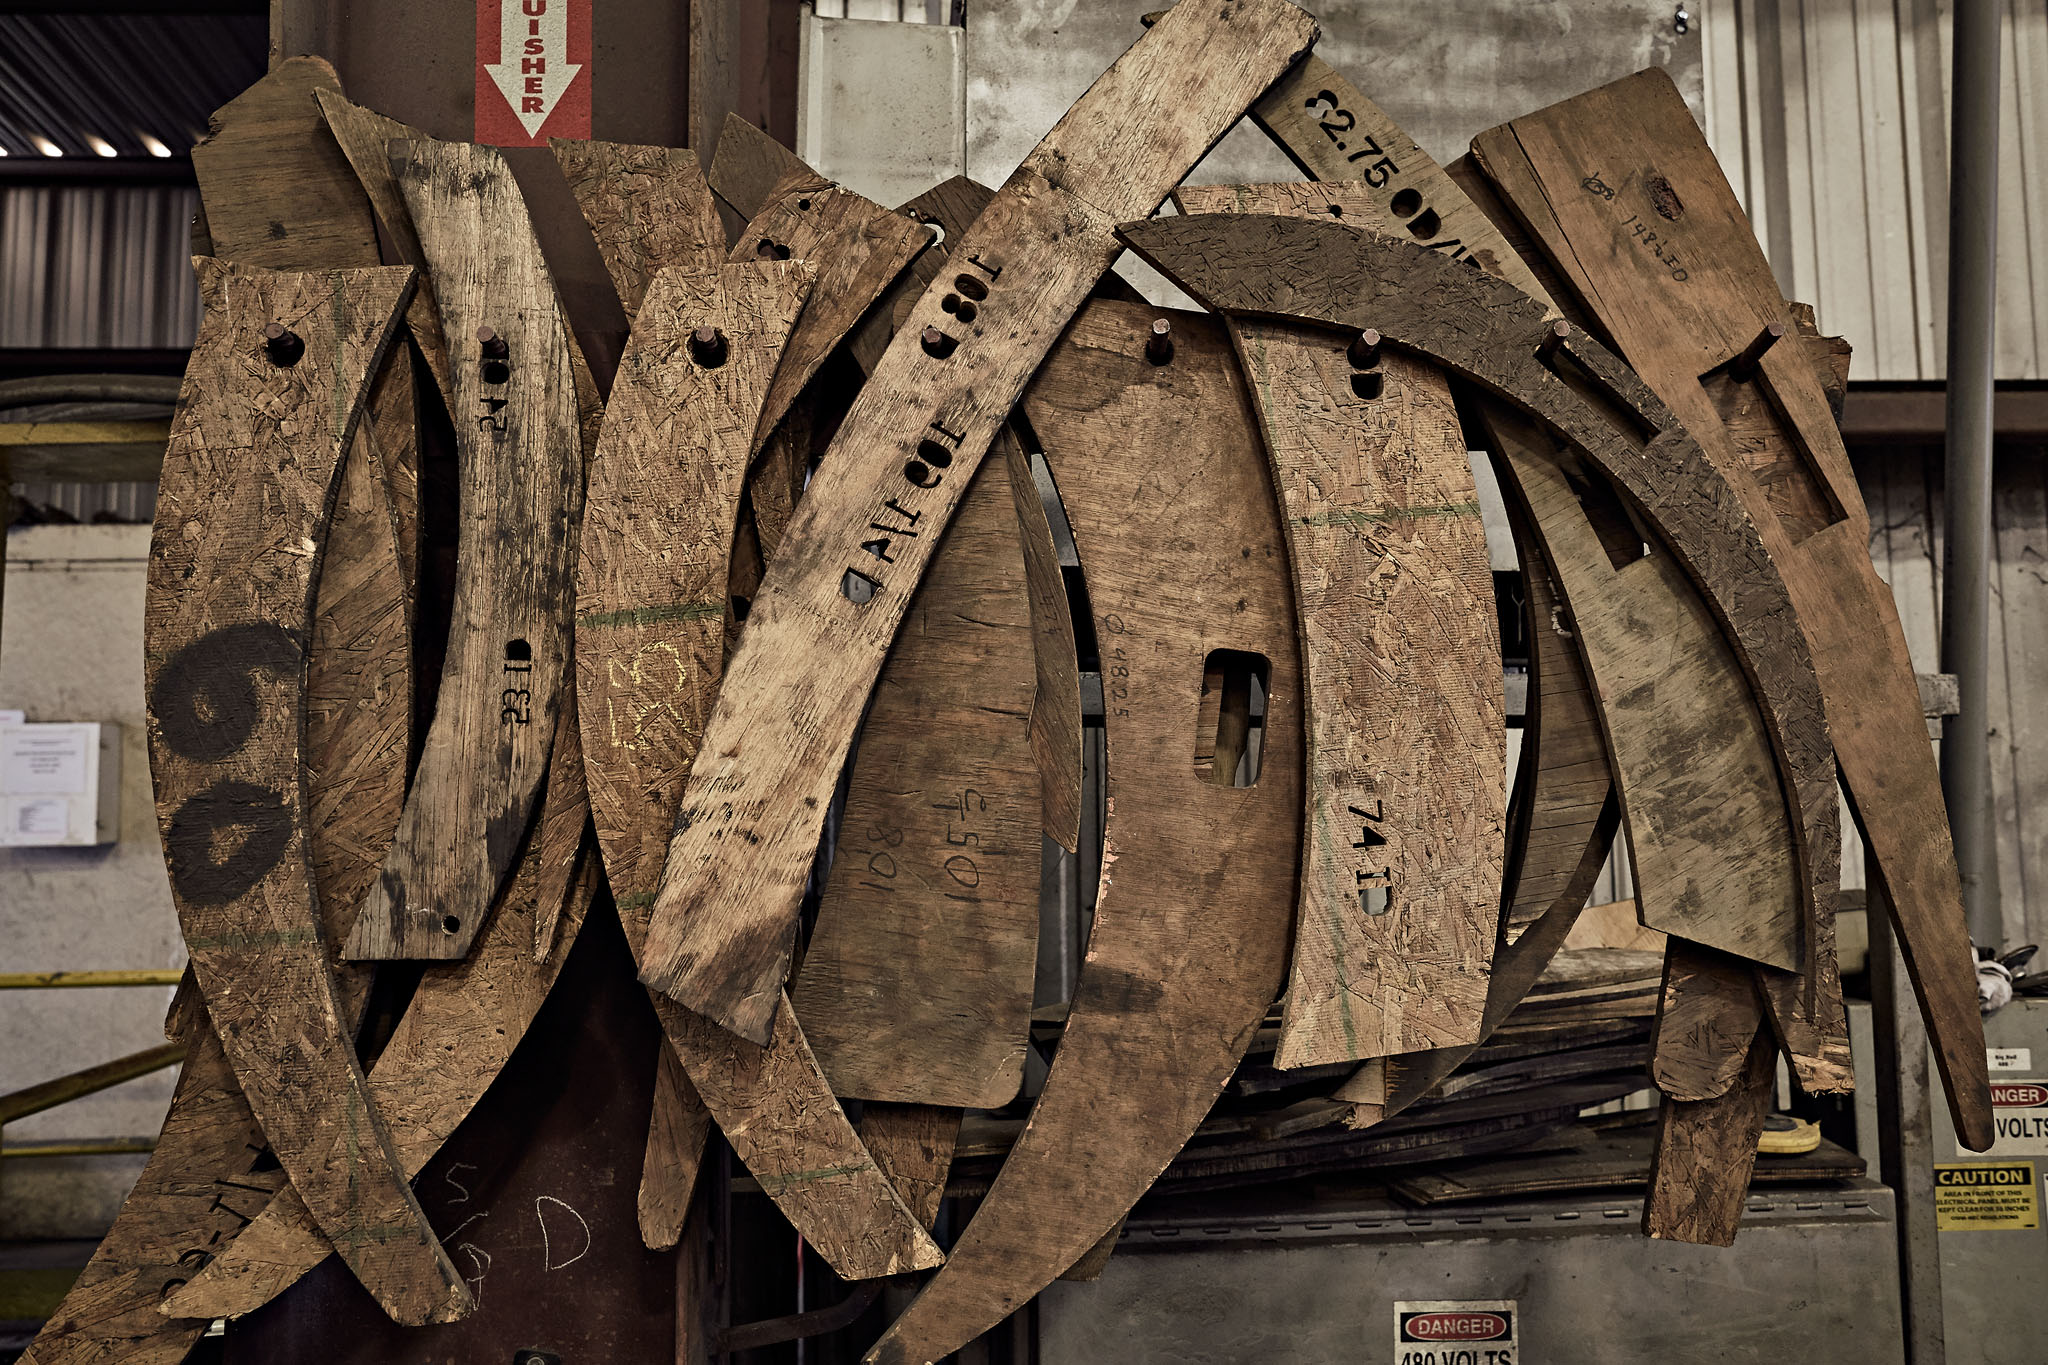 Stamp and welding forms at industrial factory by Atlanta photographer Nick Burchell